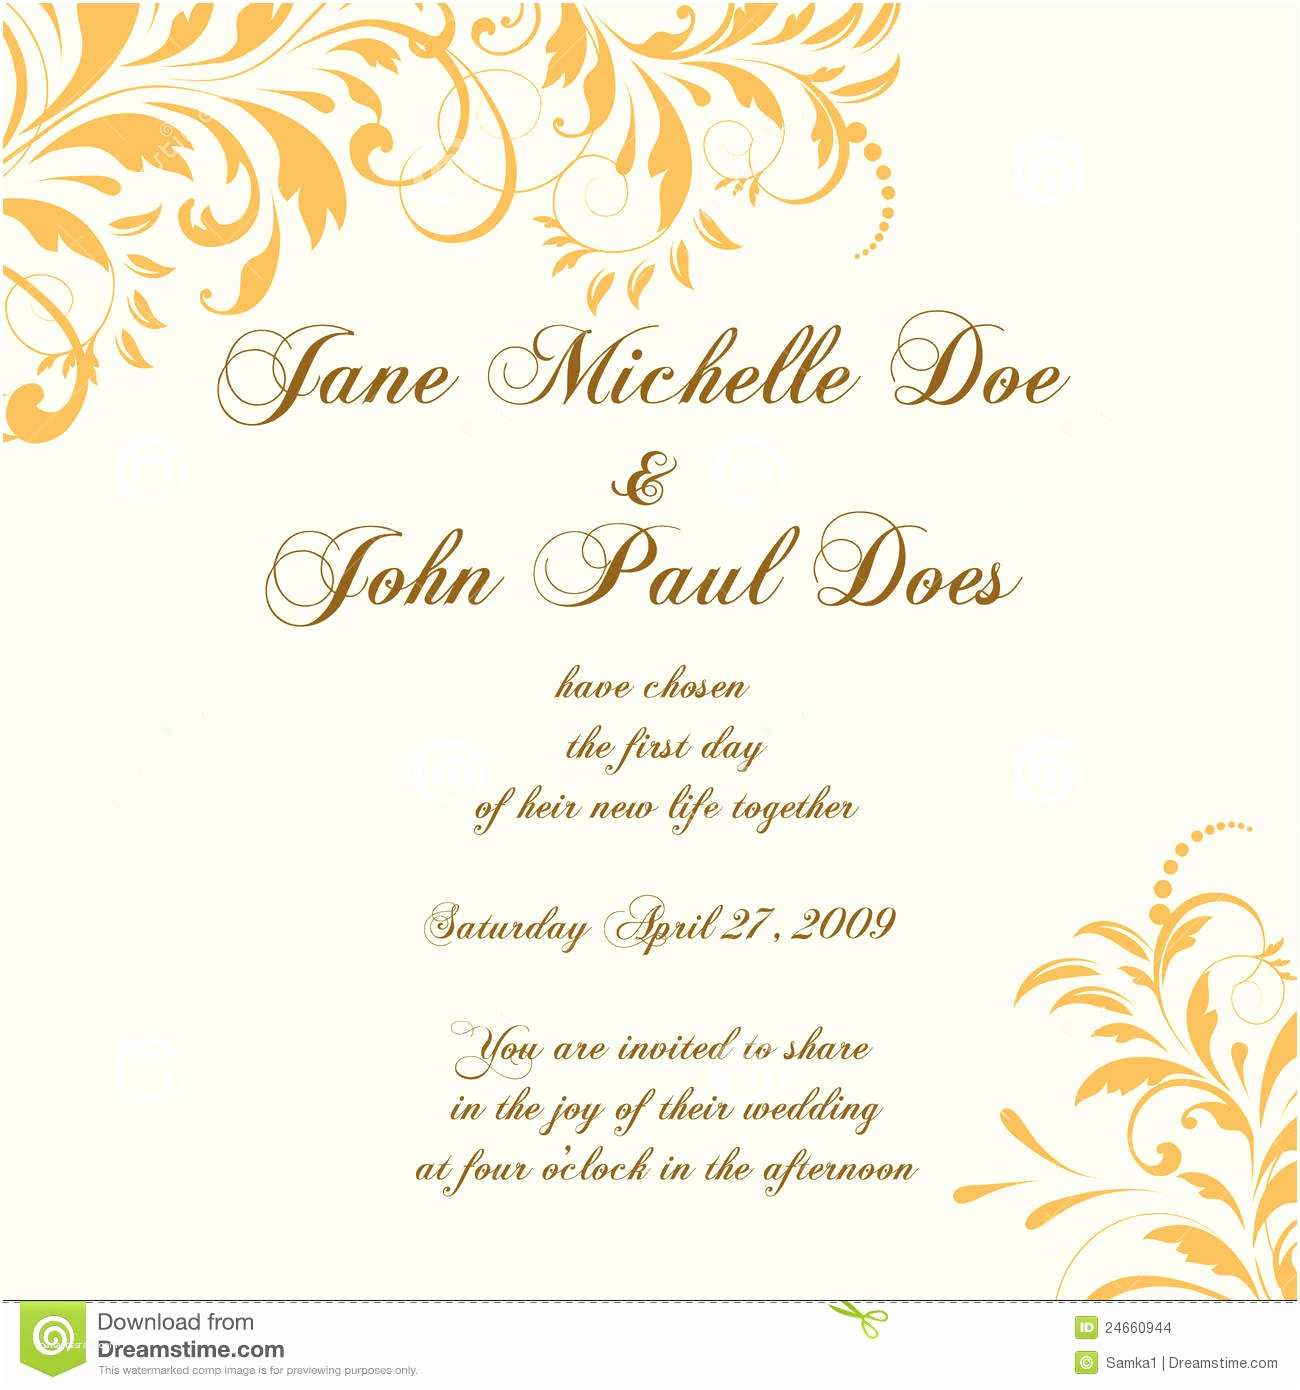 Postcard Wedding Invitations Wedding Card Invitation With Abstract Floral